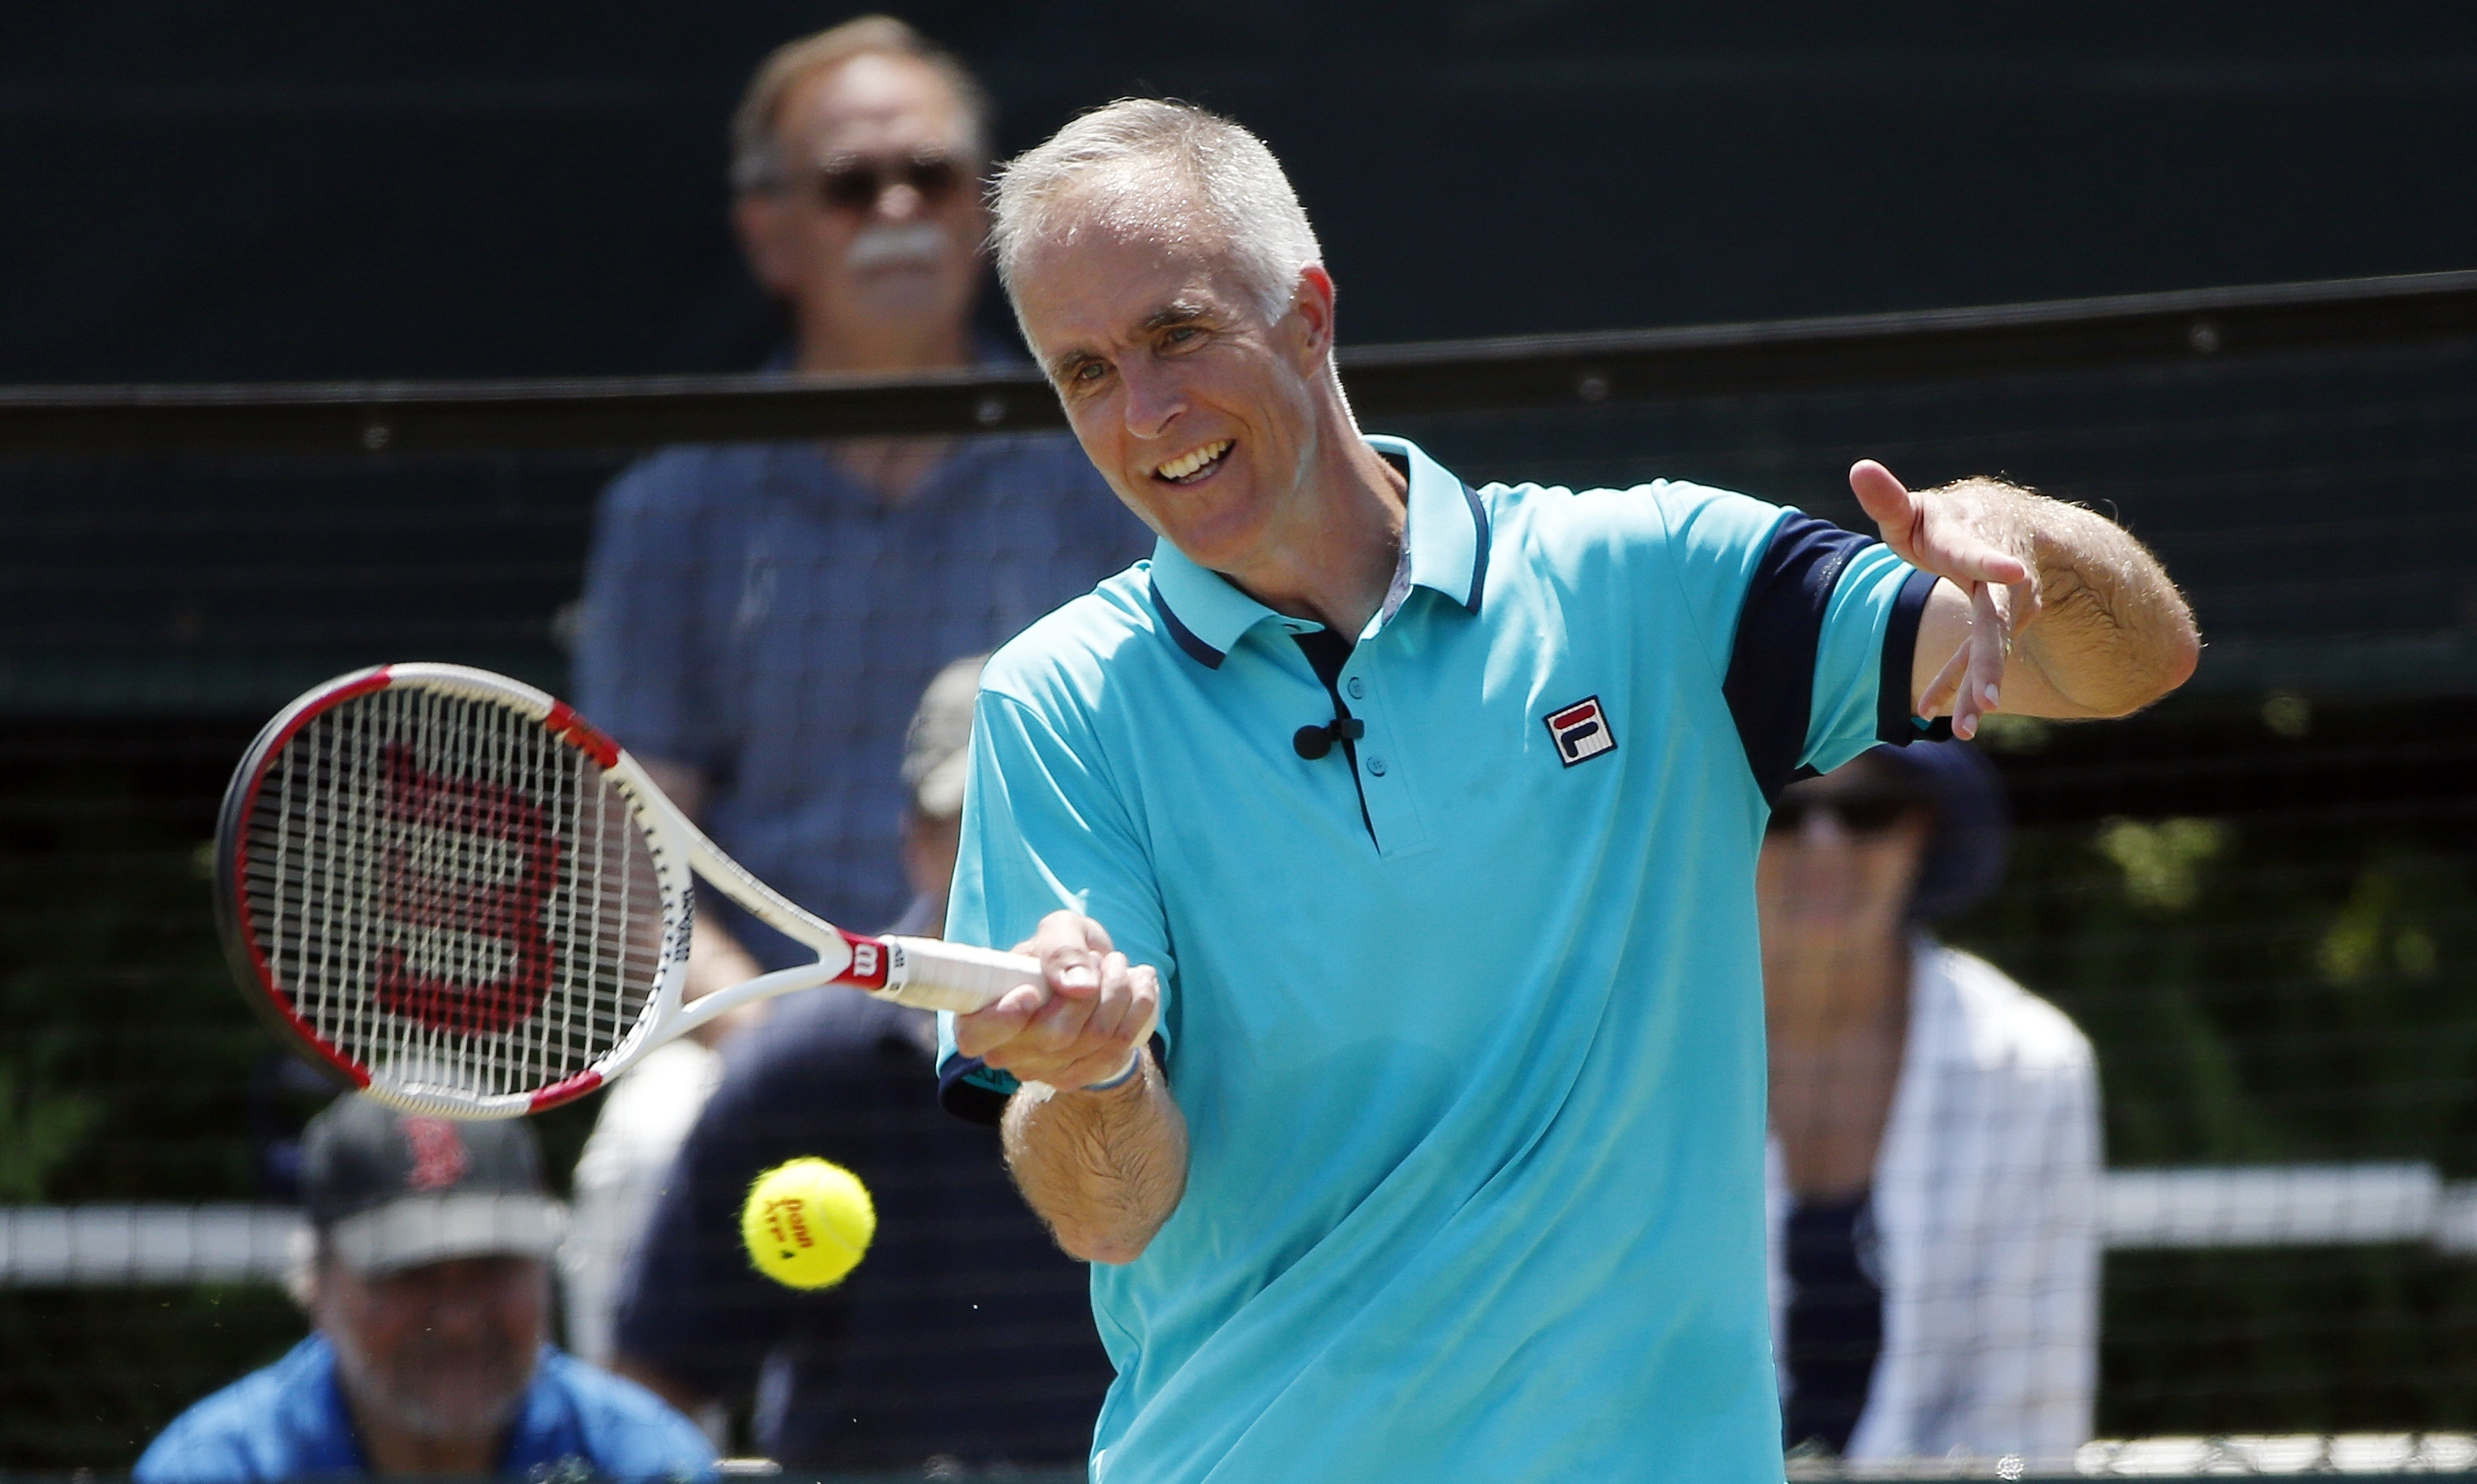 FILE - In this July 19, 2015, file photo, International Tennis Hall of Fame CEO Todd Martin plays in an exhibition doubles match at the Hall of Fame in Newport, R.I. Martin, who calls barely missing out on the chance to represent the U.S. in singles at At